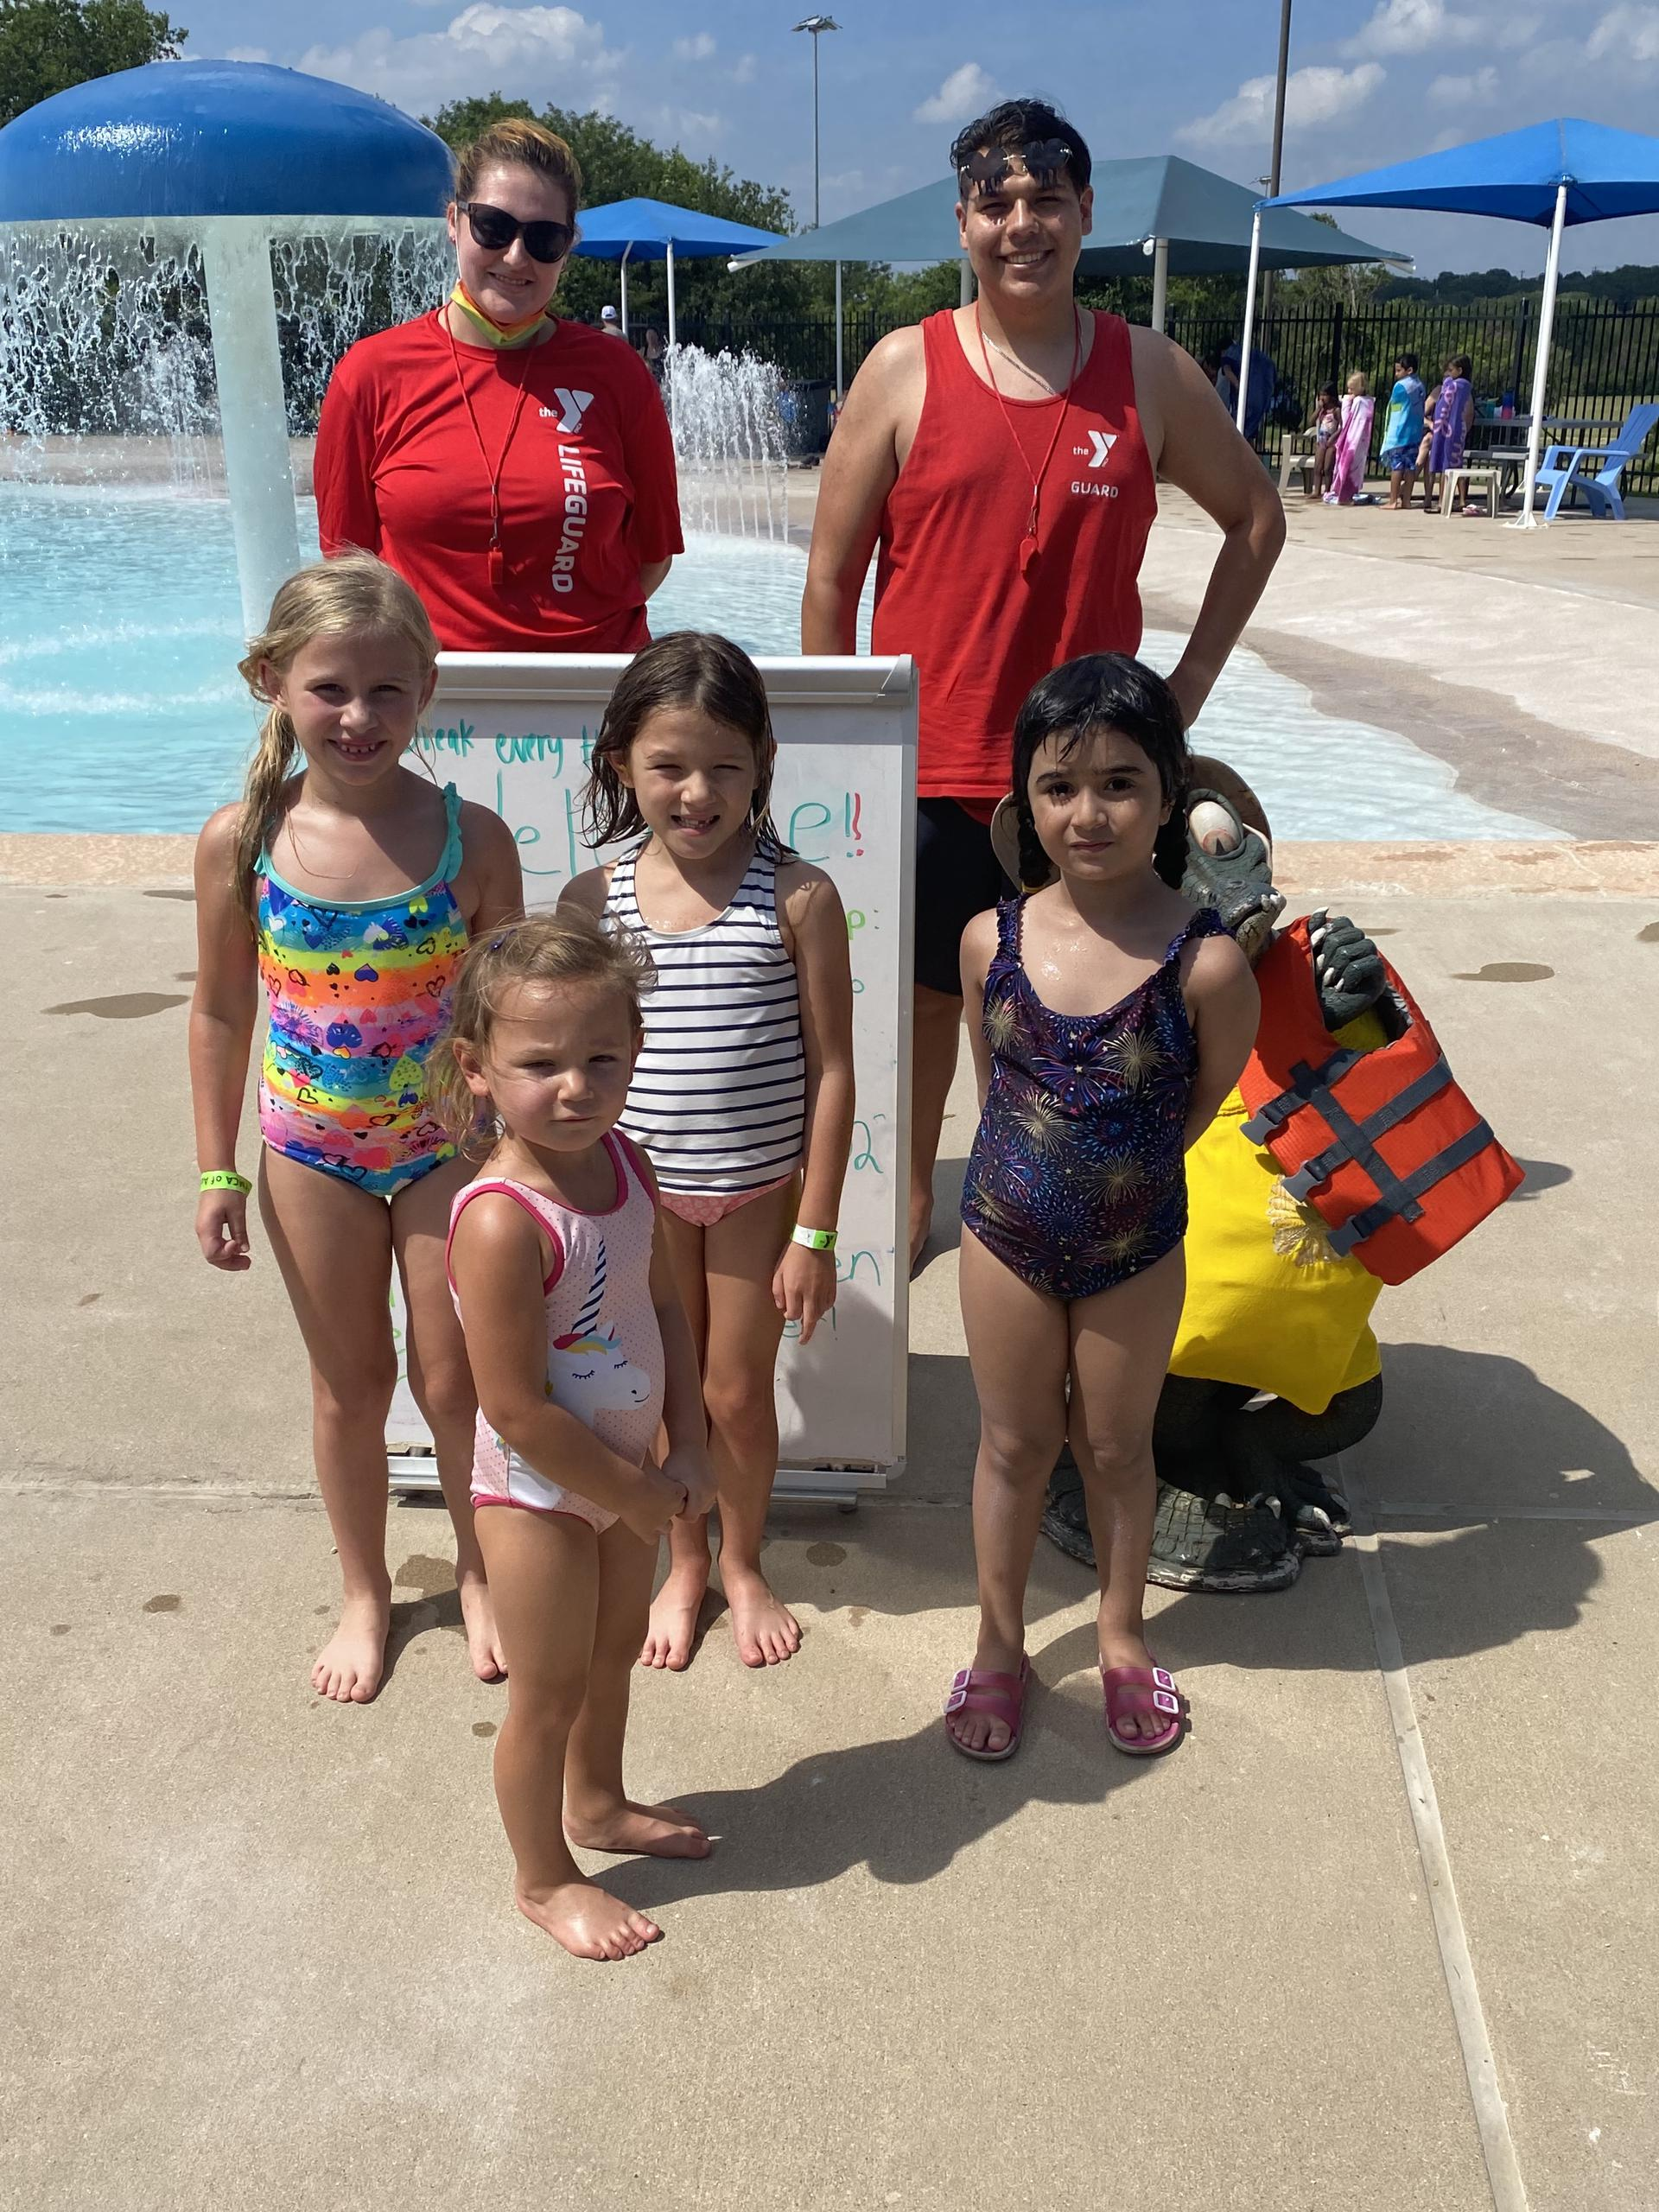 kids with lifeguards at pool